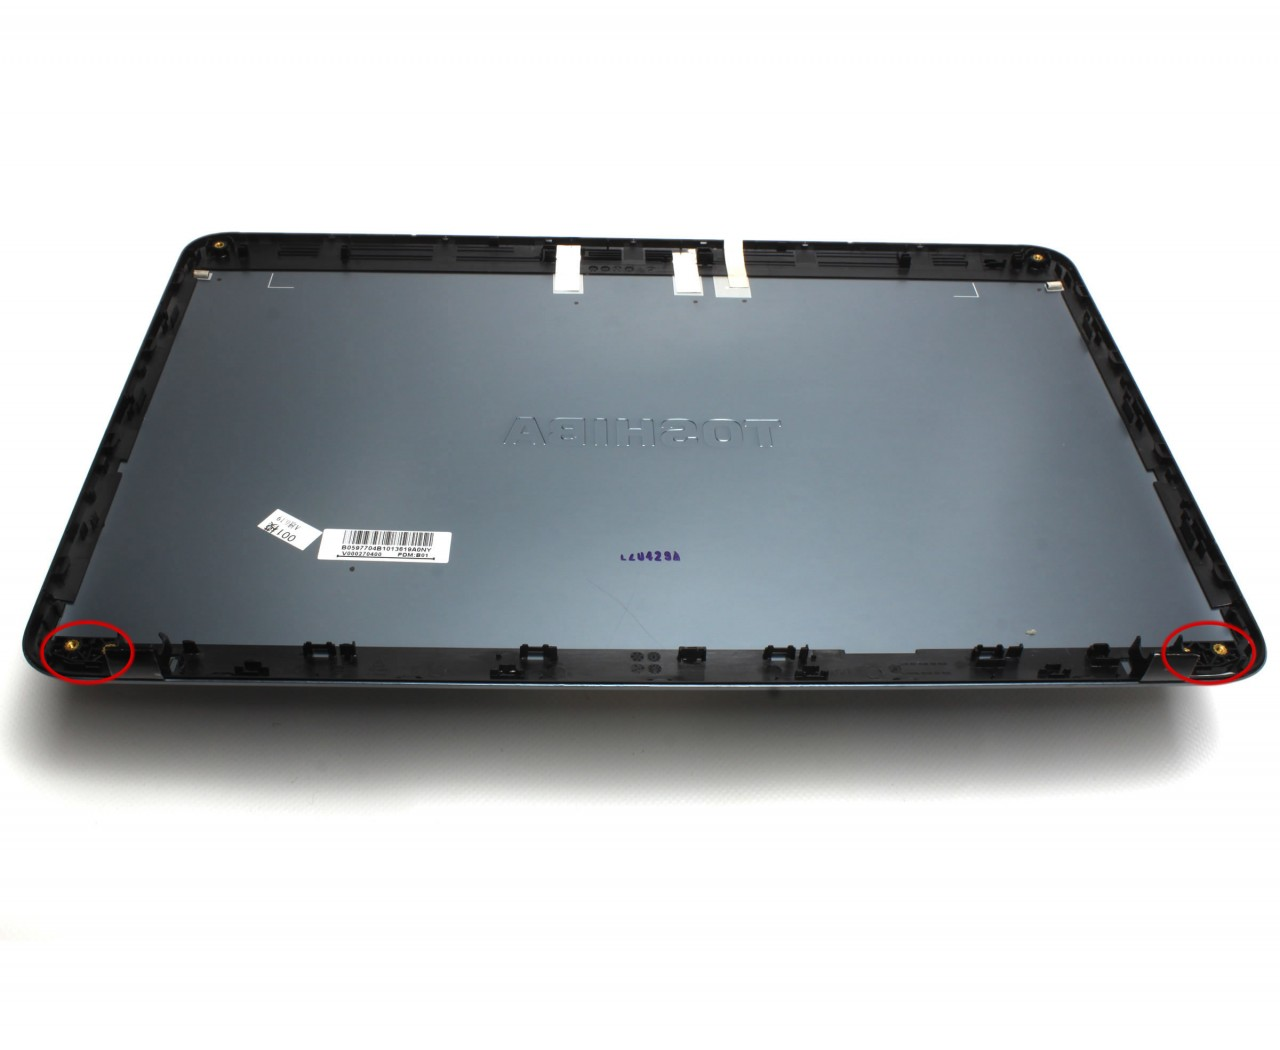 Capac Display BackCover Toshiba Satellite S855 Carcasa Display Gri cu 2 Suruburi Balamale imagine powerlaptop.ro 2021